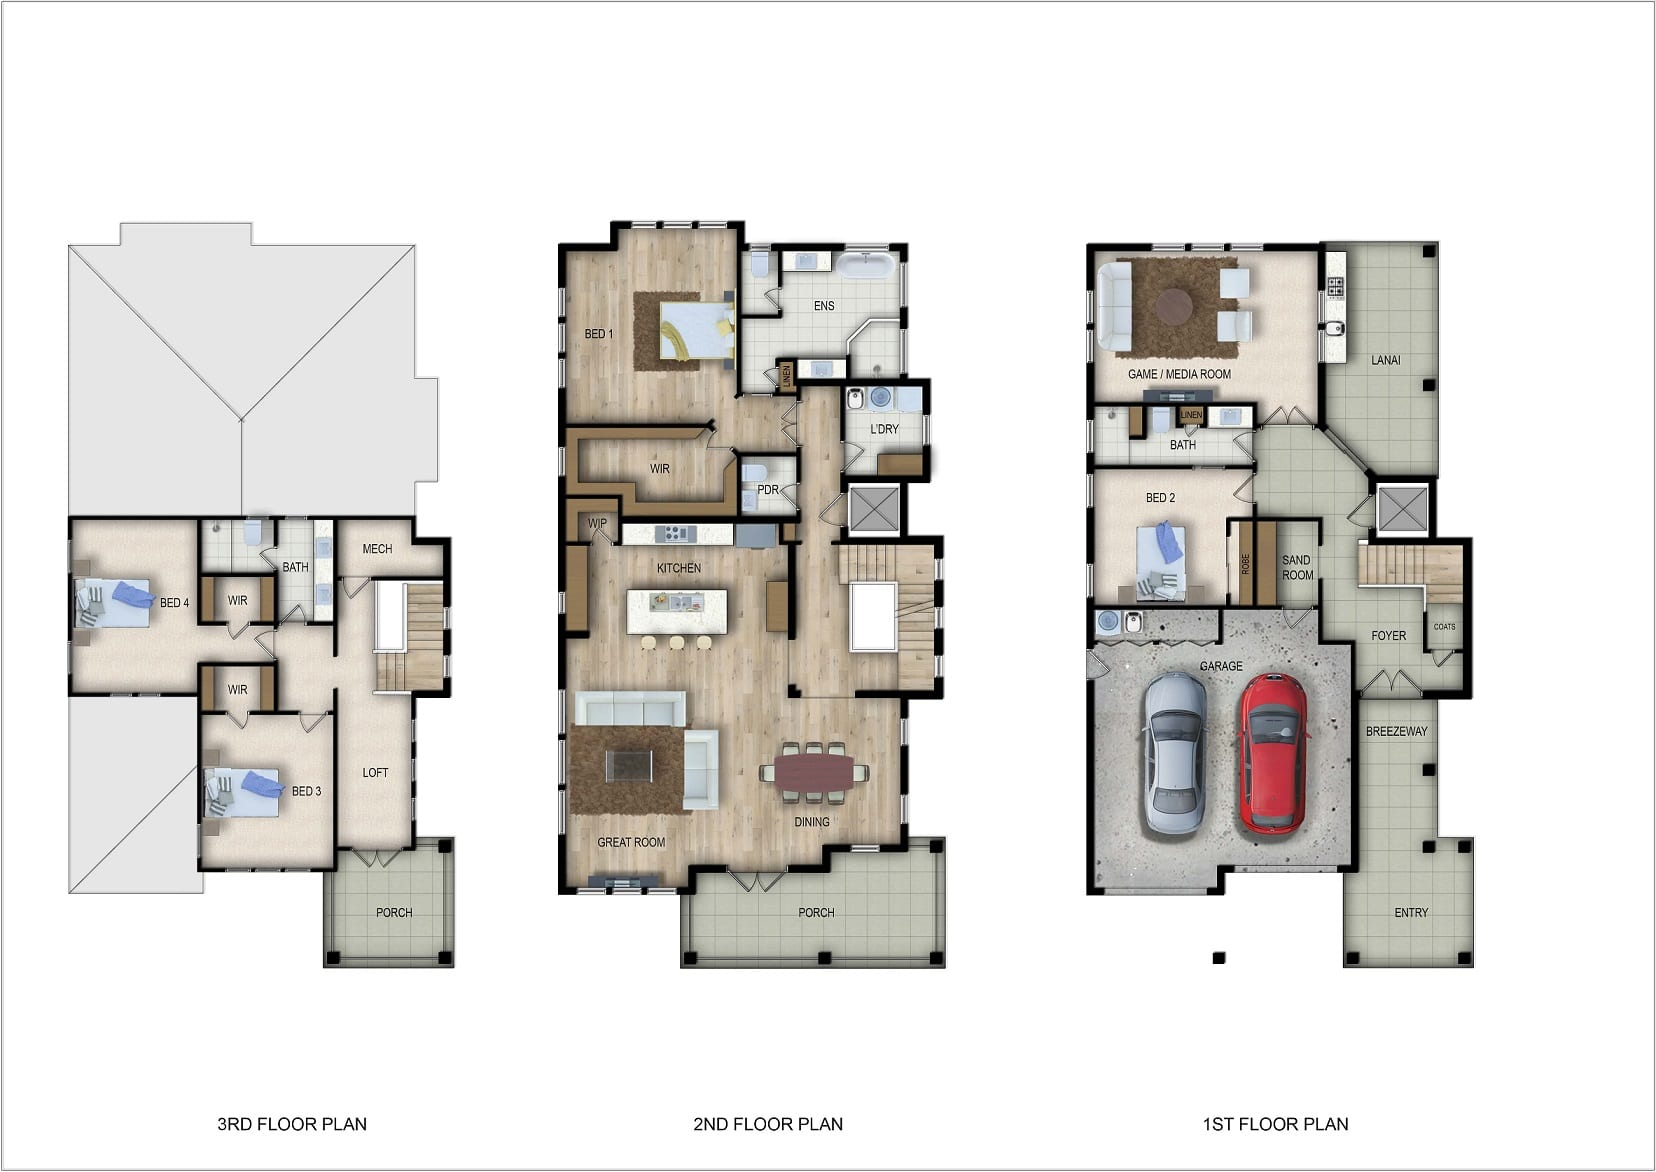 Floor plans of a custom built home in South Jacksonville Beach at 37th Avenue South